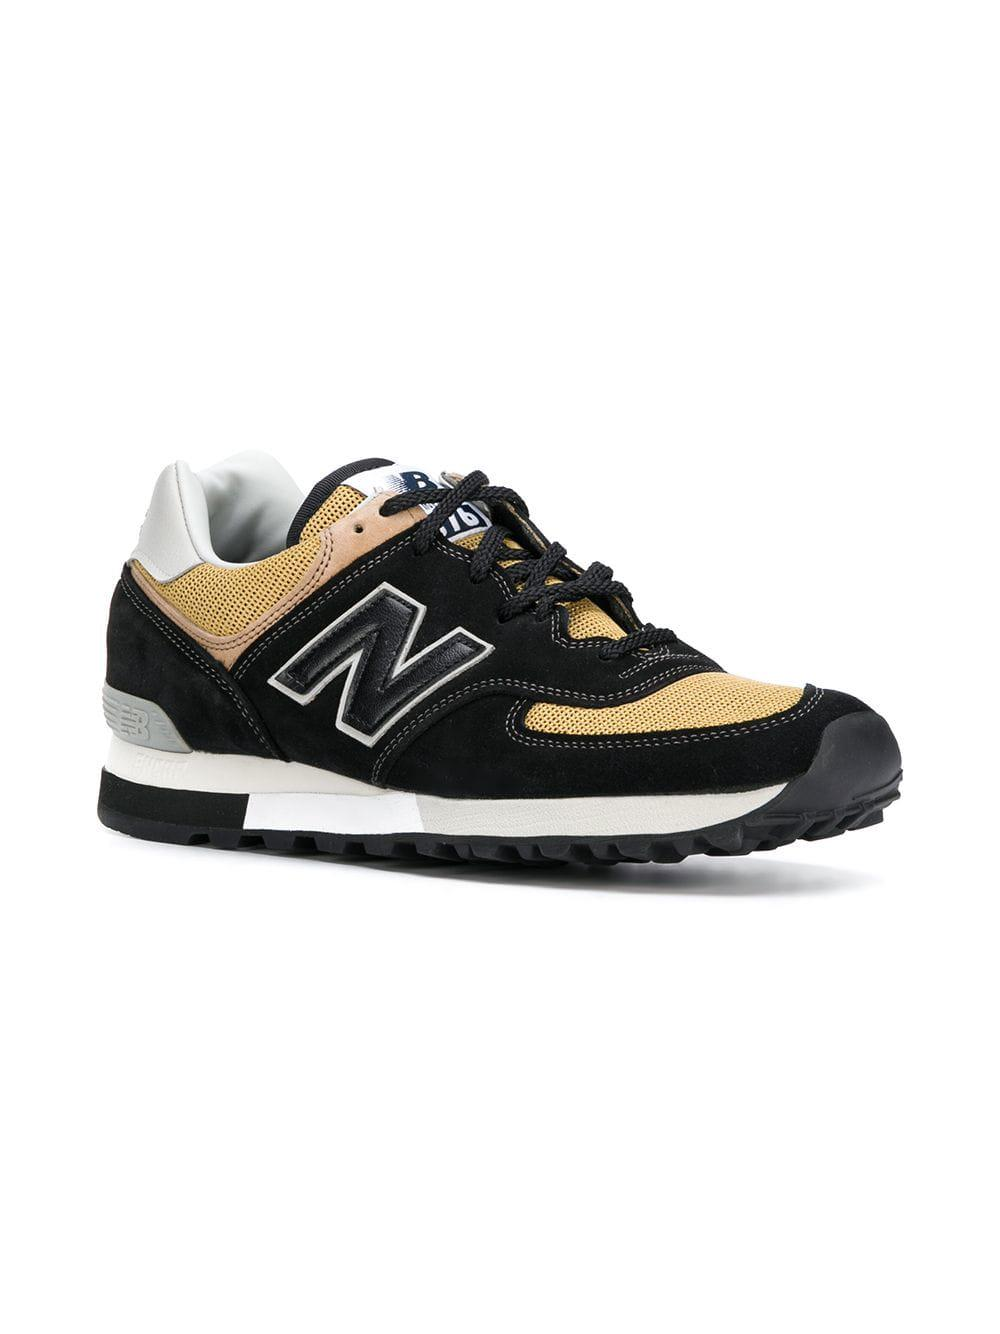 detailed look 57eb5 d25bf Lyst - Baskets 576 New Balance pour homme en coloris Noir